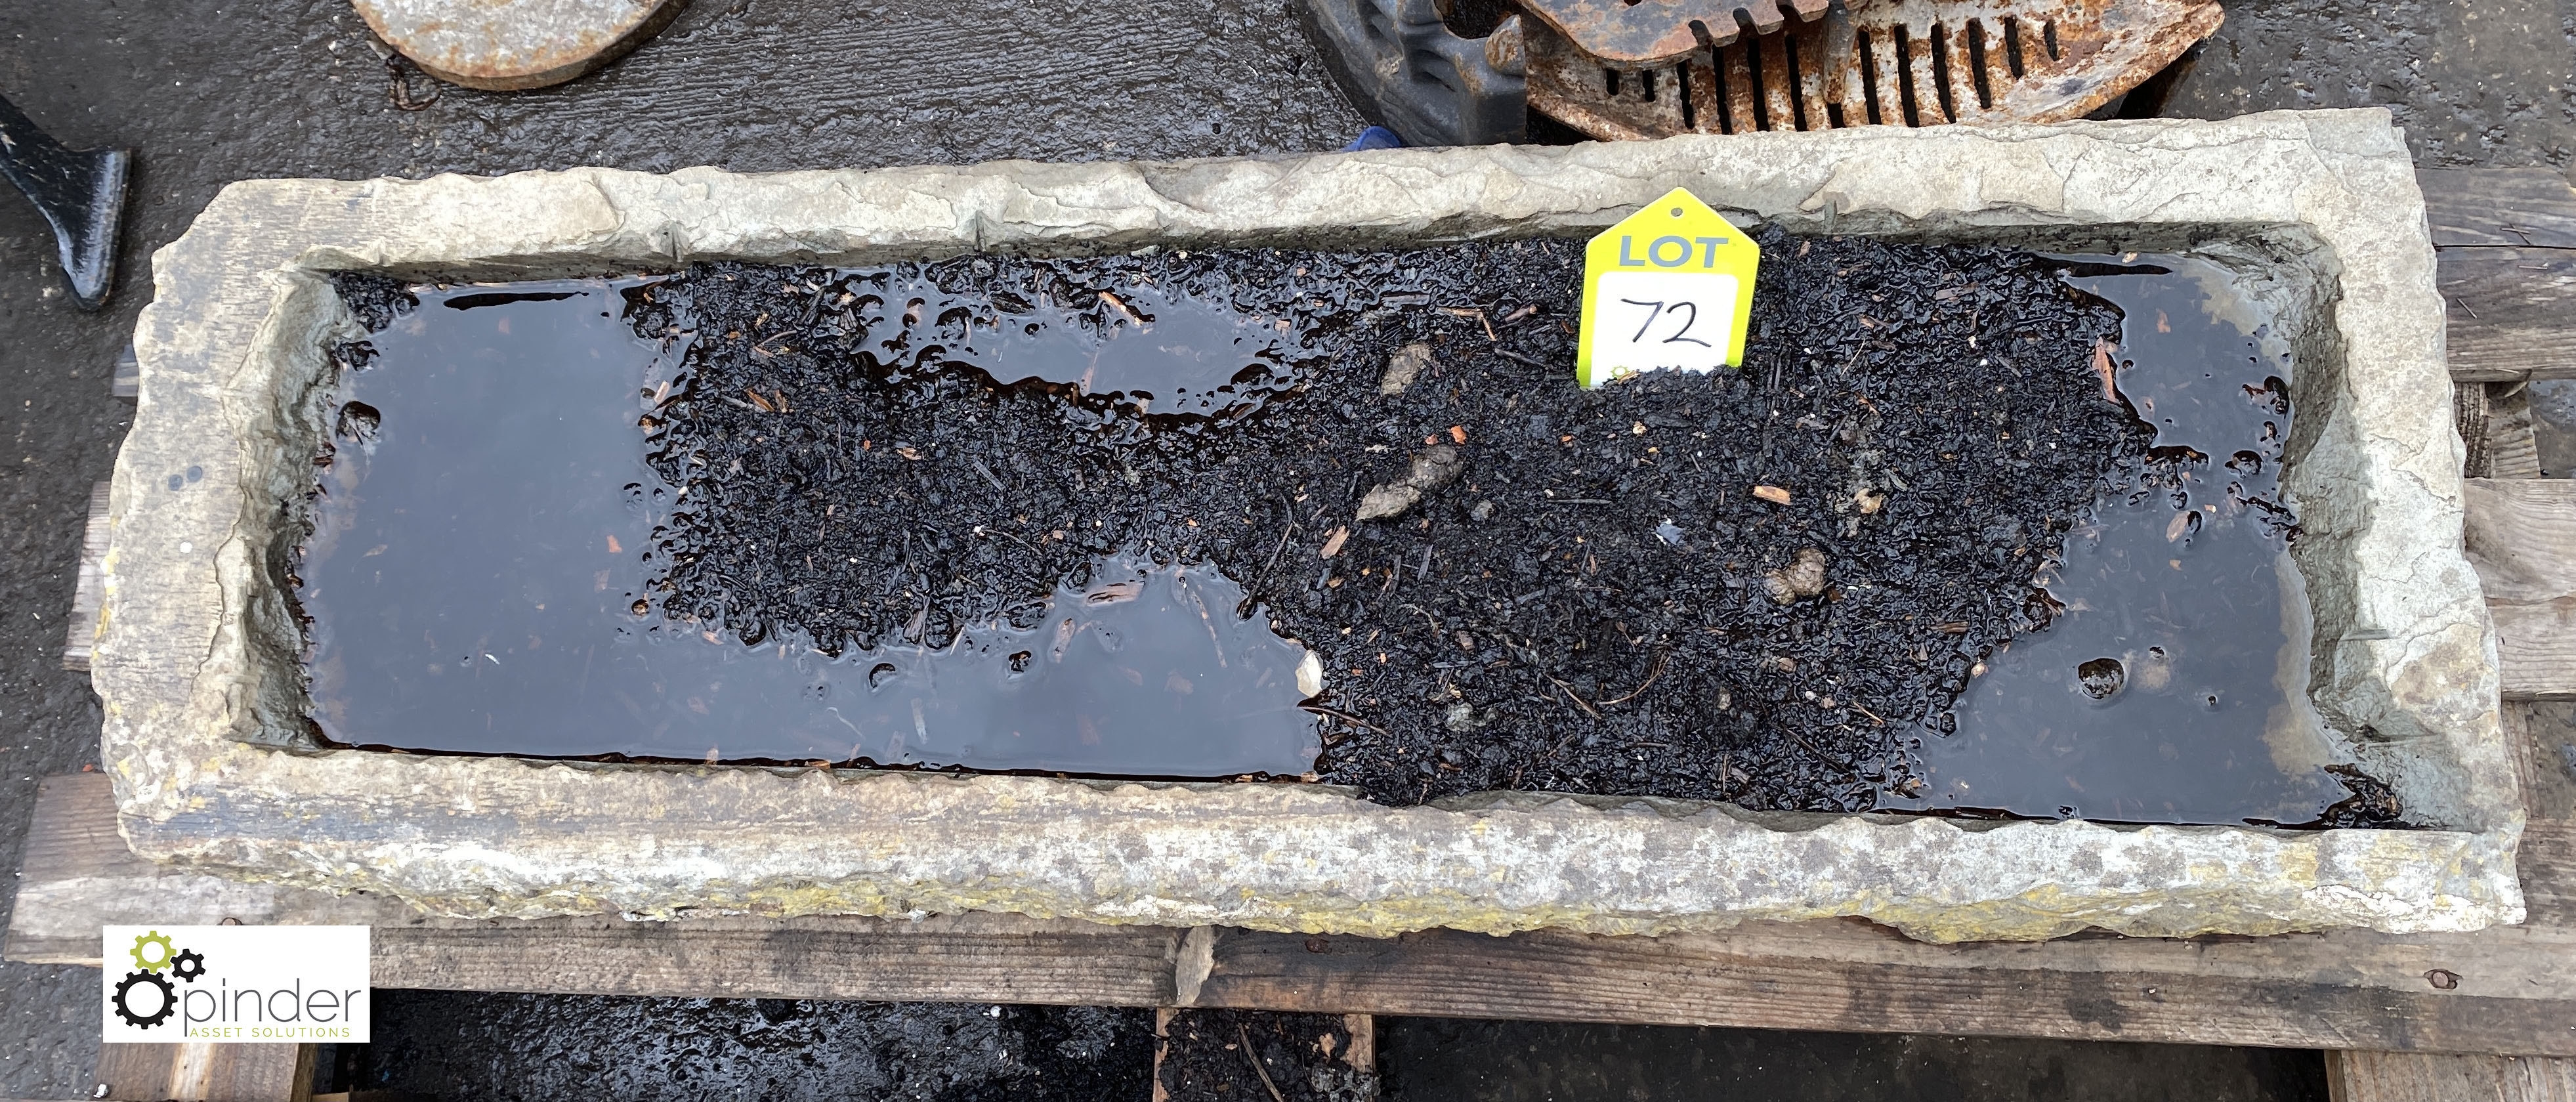 Stone Trough, 960mm x 330mm x 150mm deep (LOCATION: Sussex Street, Sheffield) - Image 3 of 3